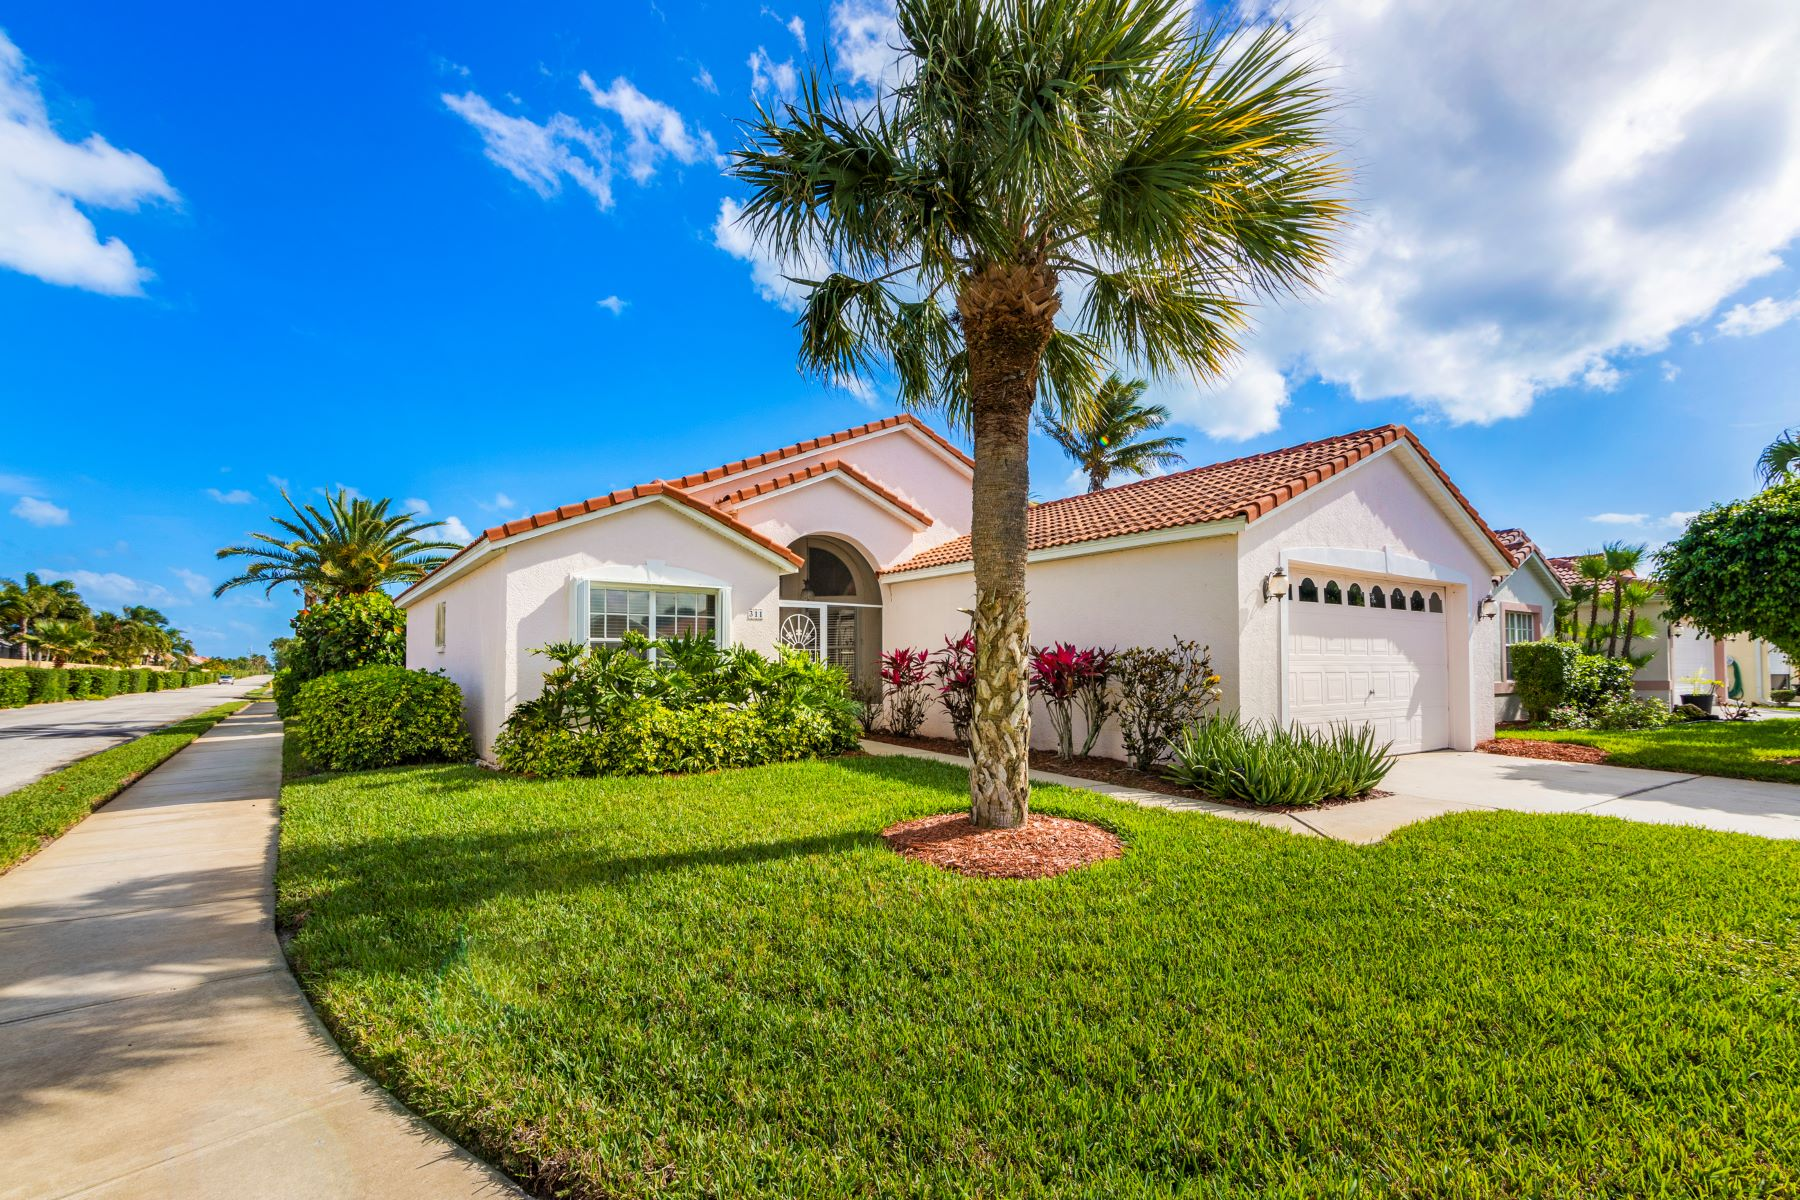 Single Family Homes for Sale at 311 Del Rio Lane Melbourne Beach, Florida 32951 United States